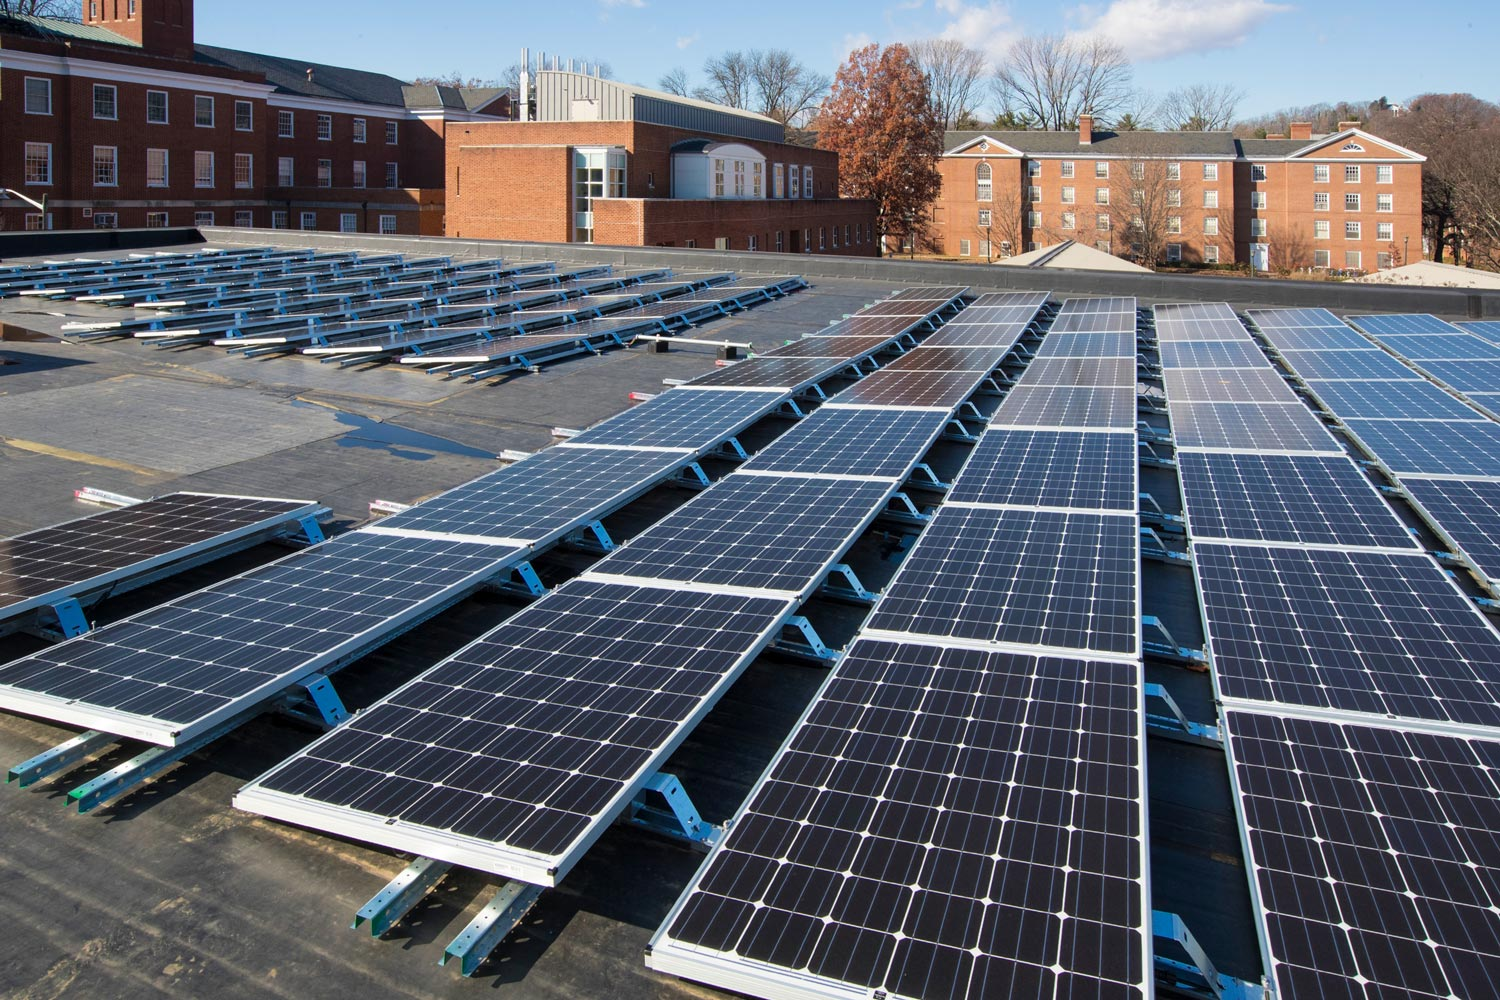 UVA generates enough solar power on Grounds to power 100 American homes for a year, with arrays atop Ruffner Hall (above), the UVA Bookstore, Clemons Library, Skipwith Hall and the Alderman Substation.